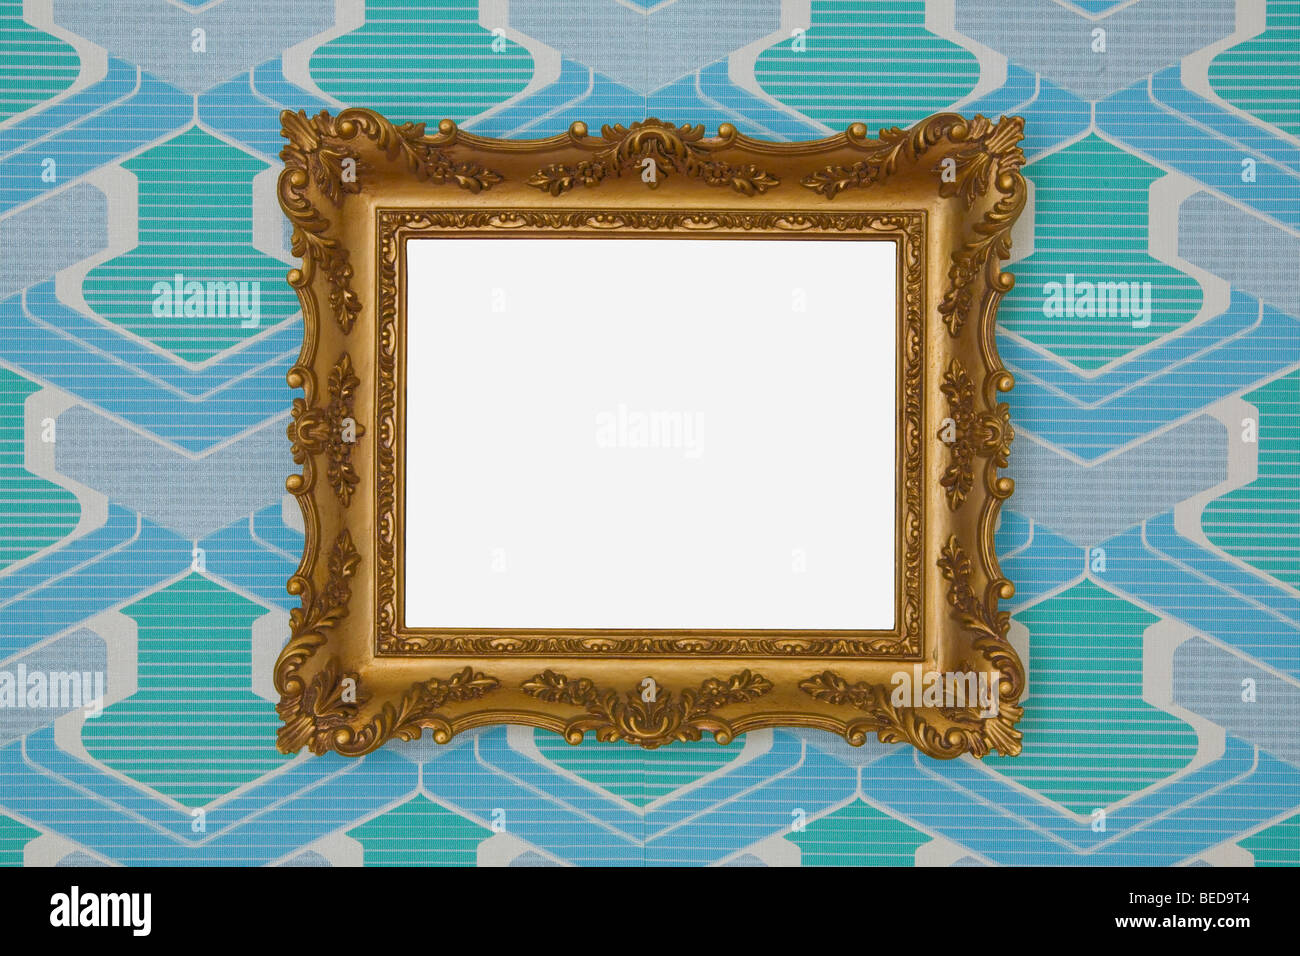 Rectangular golden plastic frame, mounted on out-dated wallpaper from the 1960s or 1970s - Stock Image